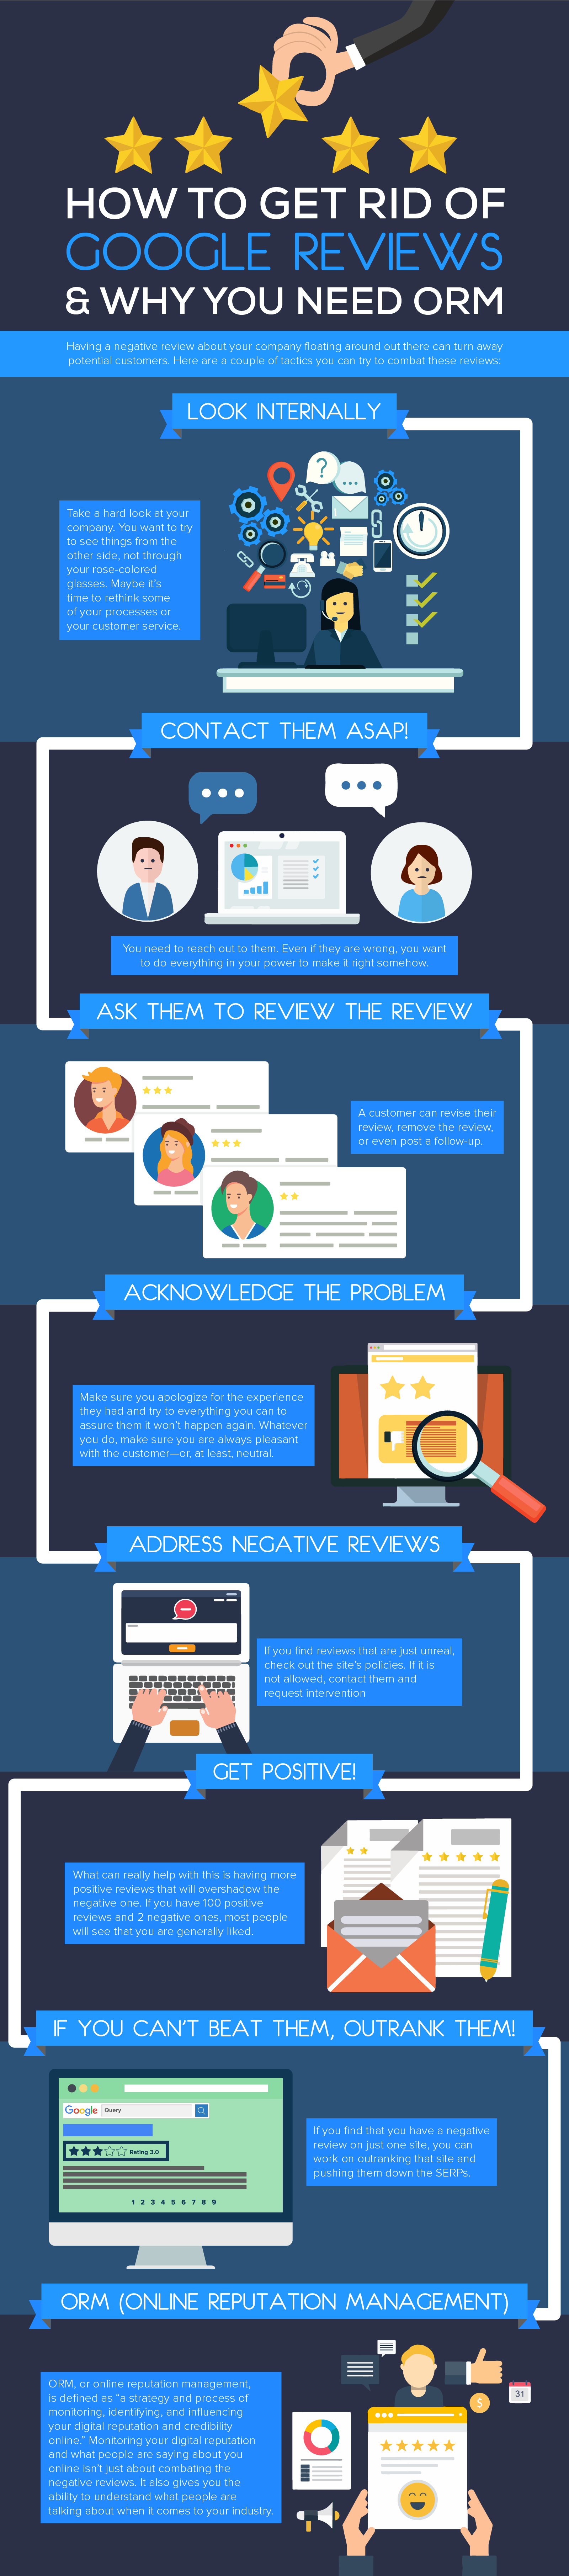 Infographic on how to get rid of a bad online review.